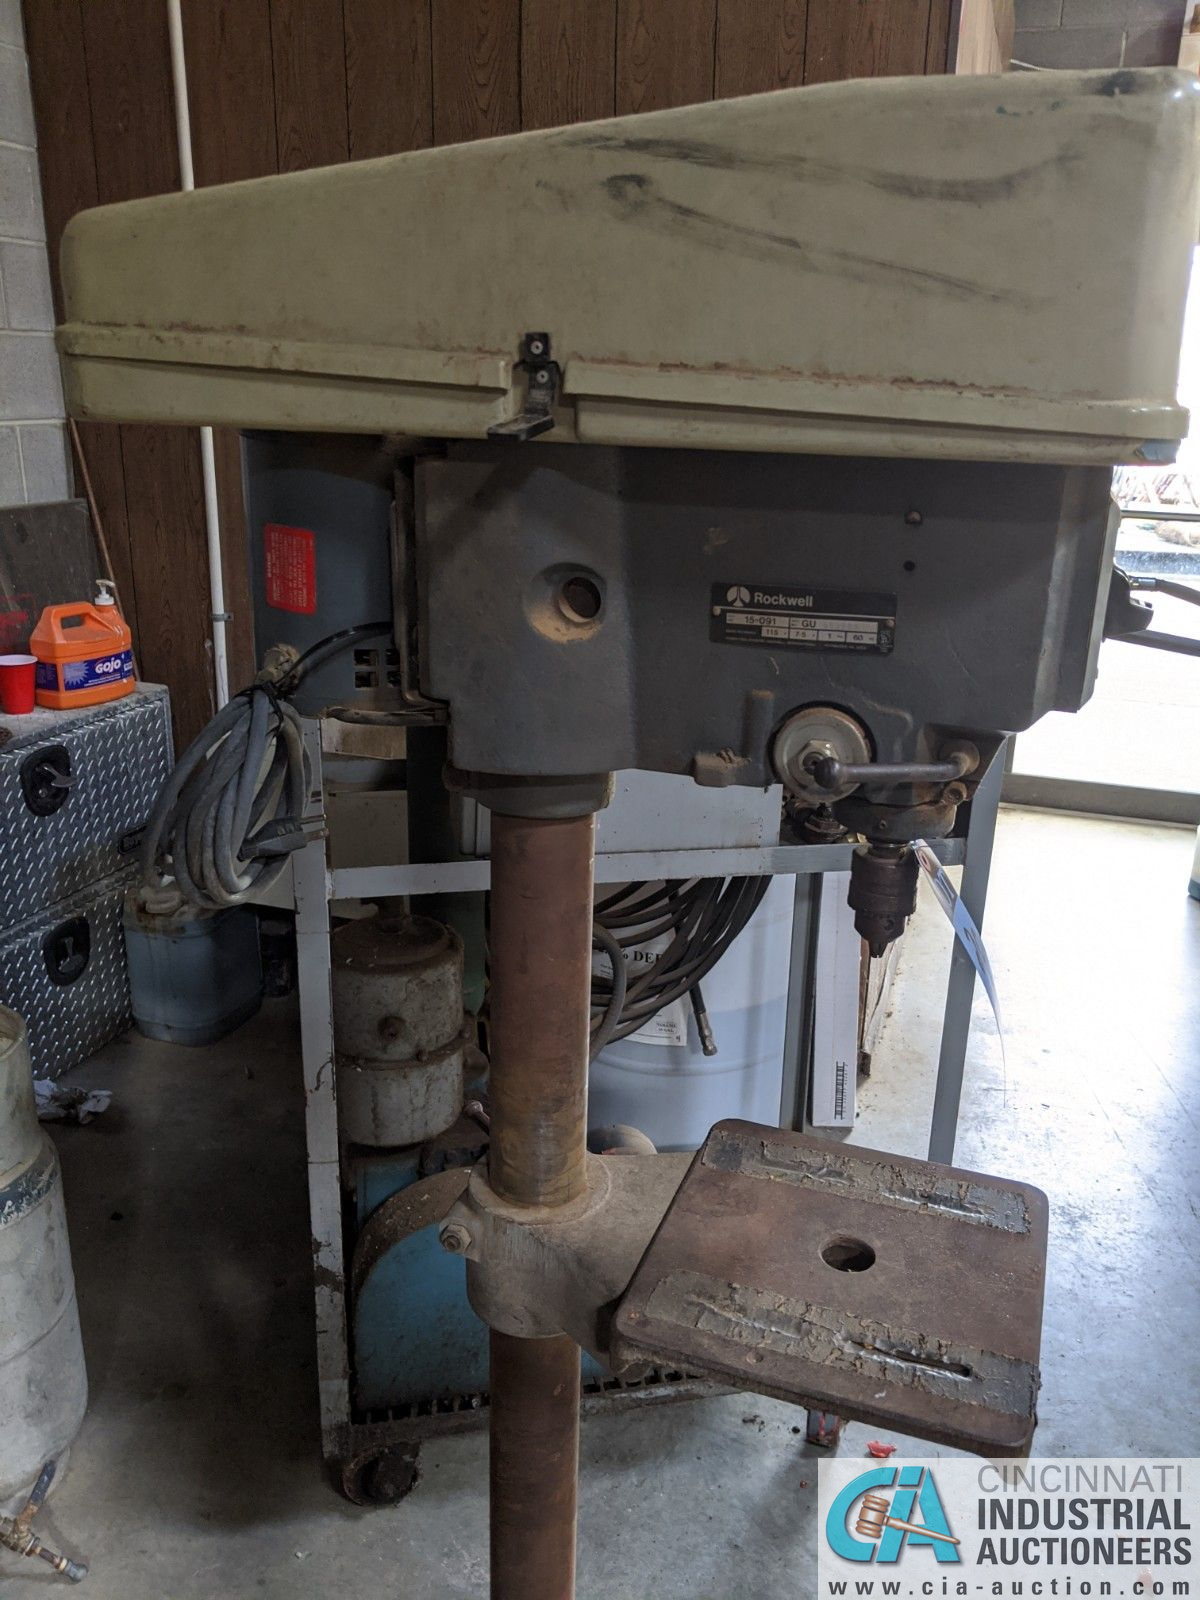 """15"""" ROCKWELL MODEL 15-091 SINGLE SPINDLE FLOOR DRILL; 10"""" X 10-1/2"""" TABLE (8635 East Ave., Mentor, - Image 2 of 4"""